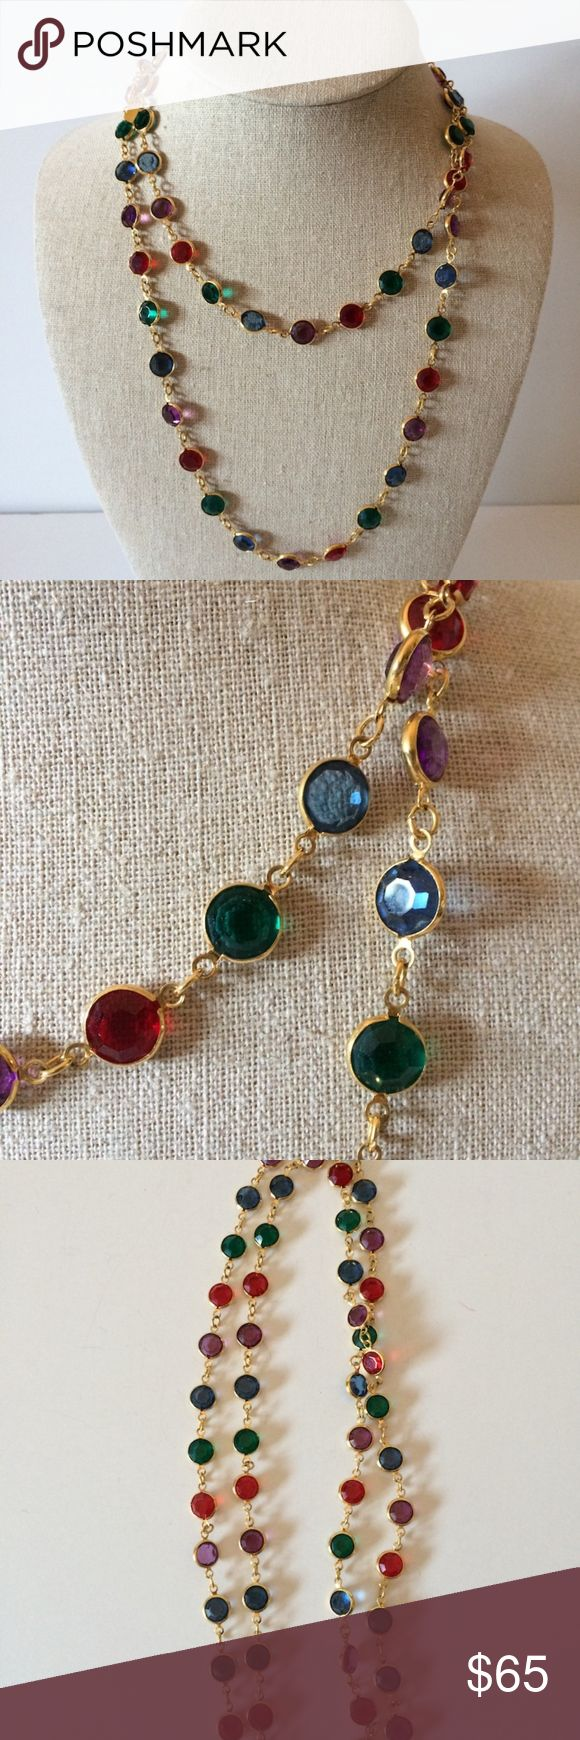 """Swarovski Multi Color Crystal Necklace - Authentic design features a single strand of bezel set faceted crystals. Easy to wear, no clasp versatile look - wear long or doubled up as pictured. - Multi color. Red, Green, Blue, Purple. Gold tone chain. Hallmarked with Swarovski swan logo tag. - Measures approx. 36"""" long. Total weight 30 grams. - Pre-owned Very Good - instantly dresses up any outfit - so lovely! Swarovski Jewelry Necklaces"""